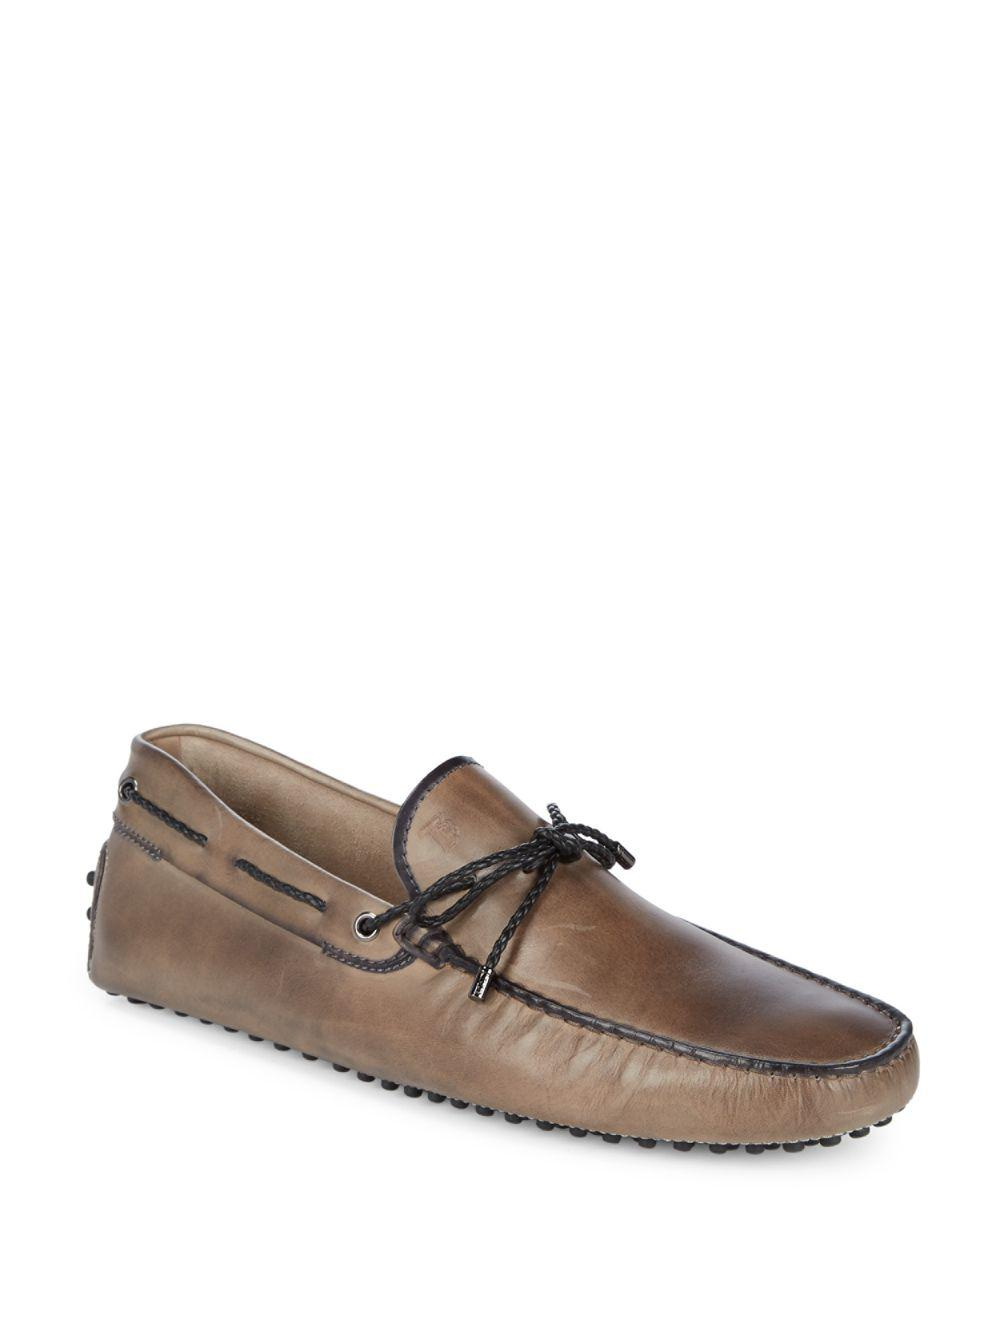 Mens Leather Tie Drivers Tod's a2TVkW